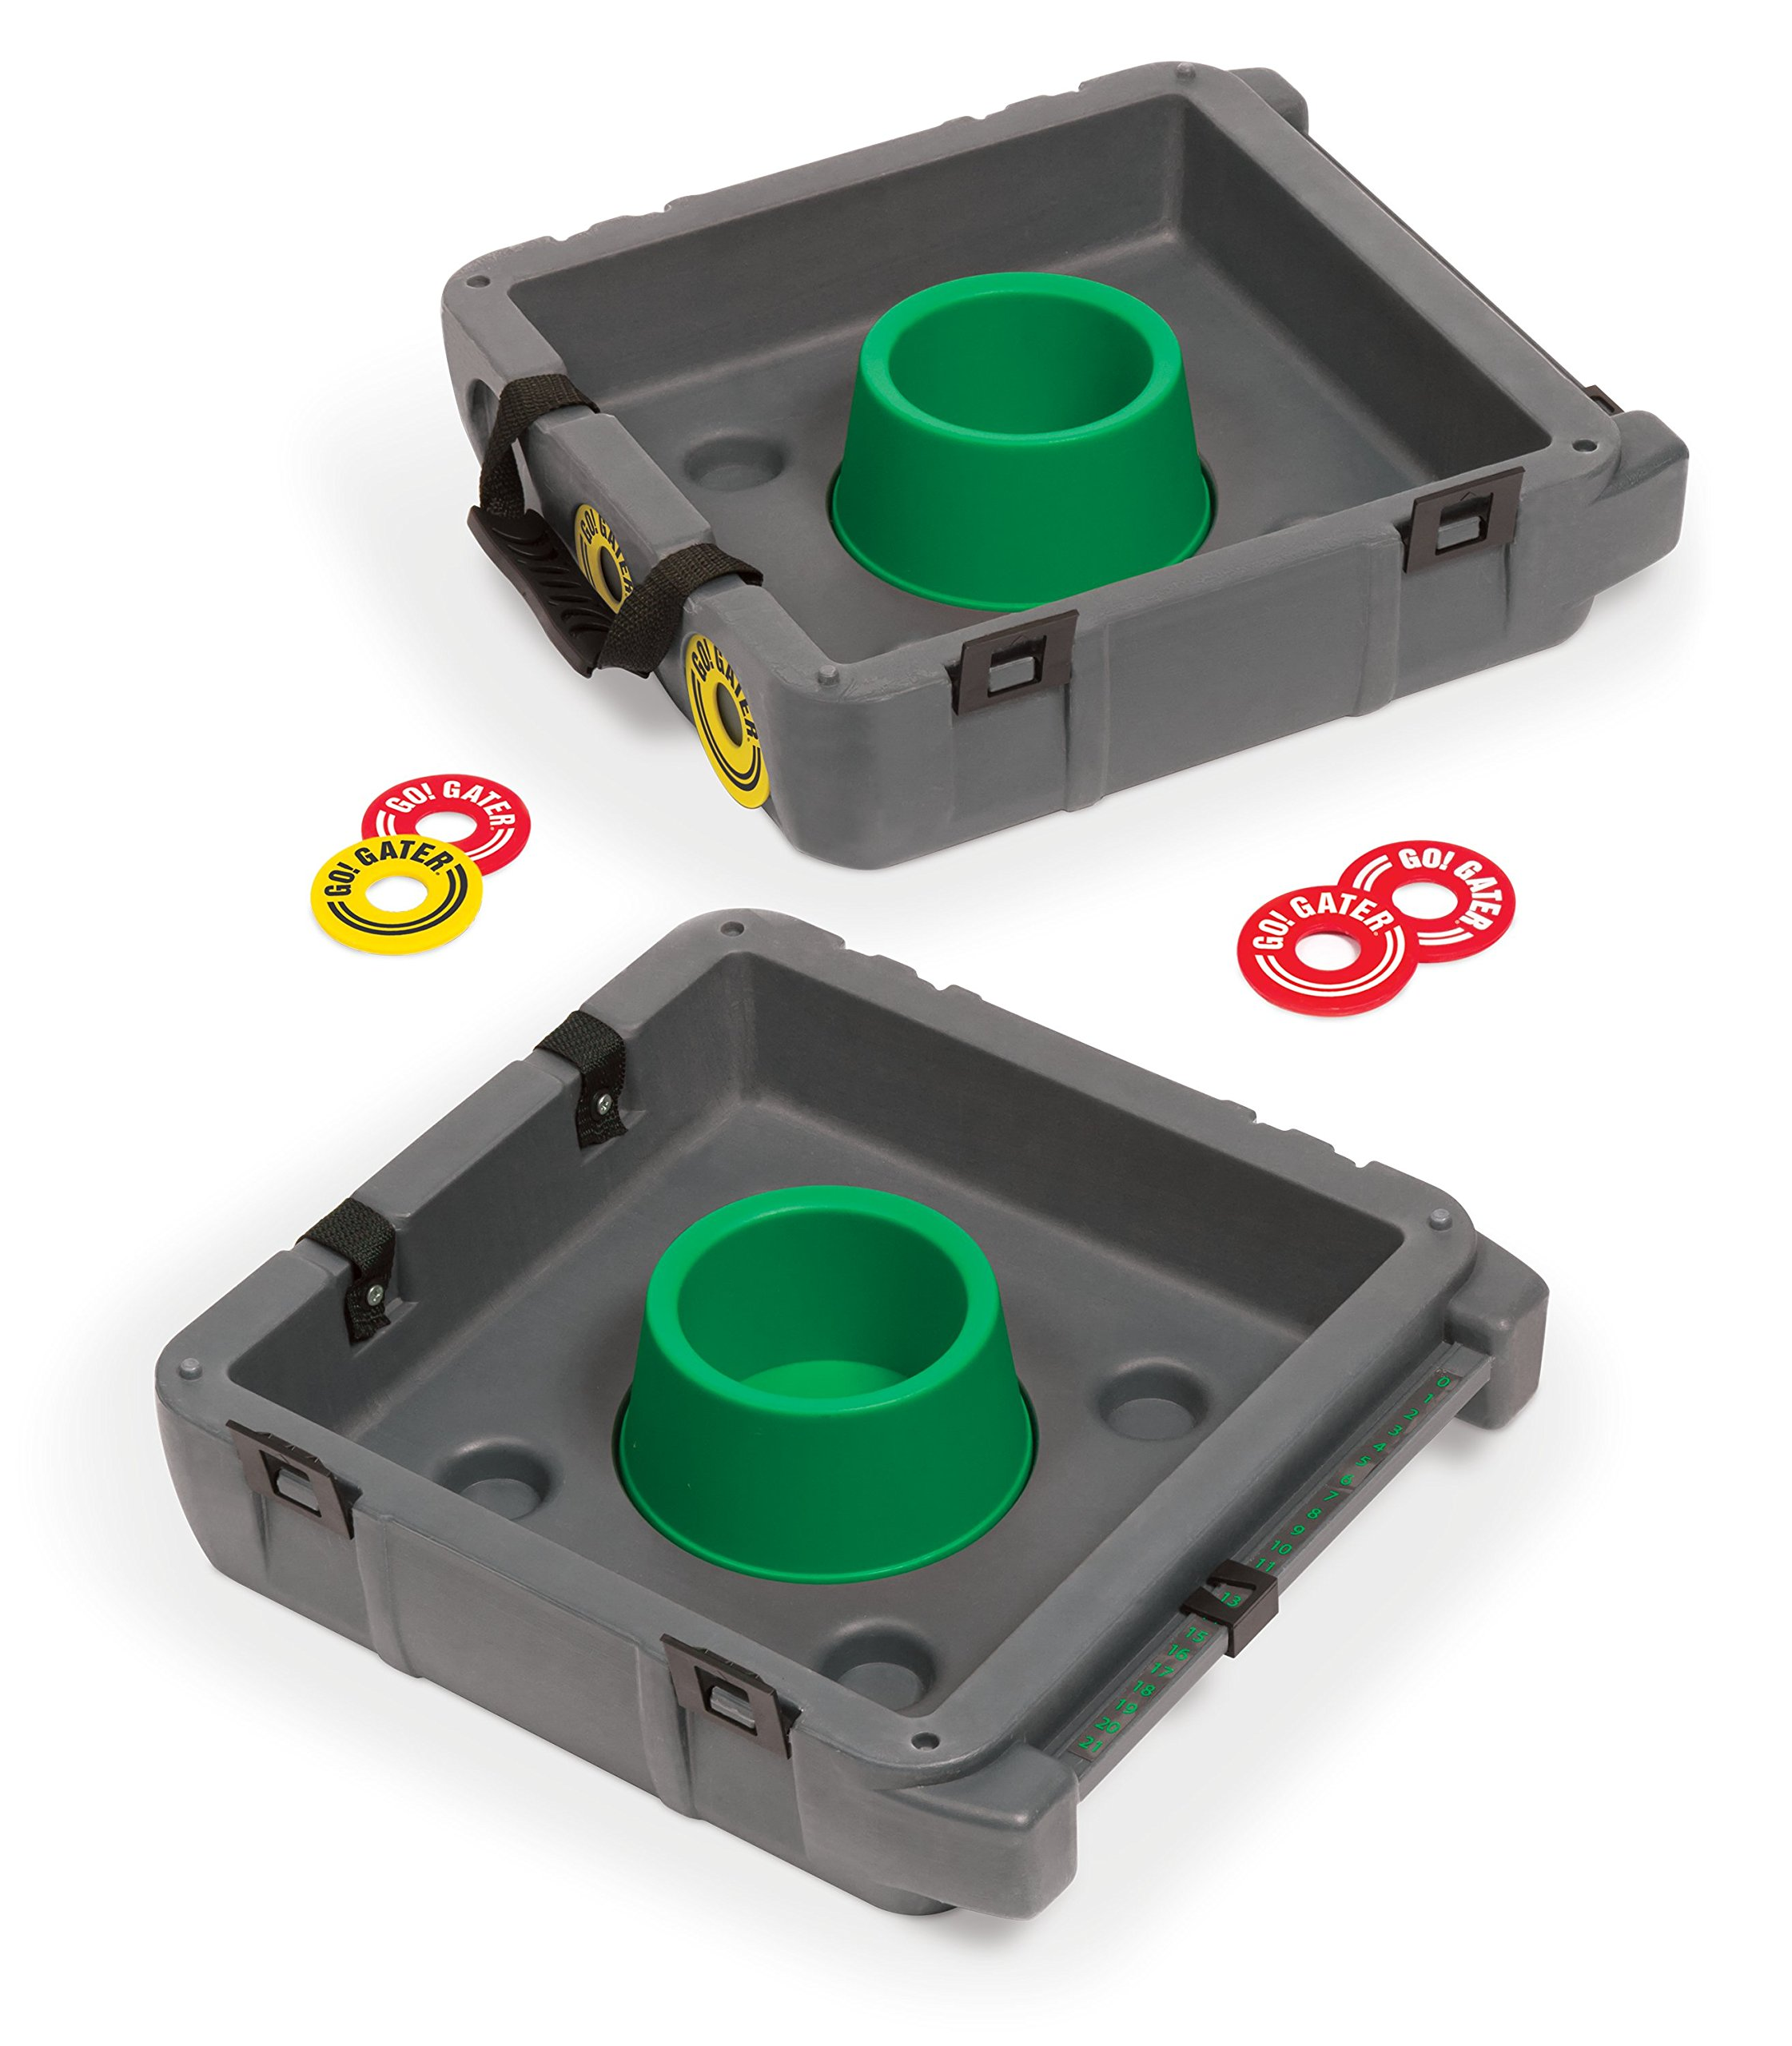 Go! Gater Washer Toss Set with Molded Case by EastPoint Sports